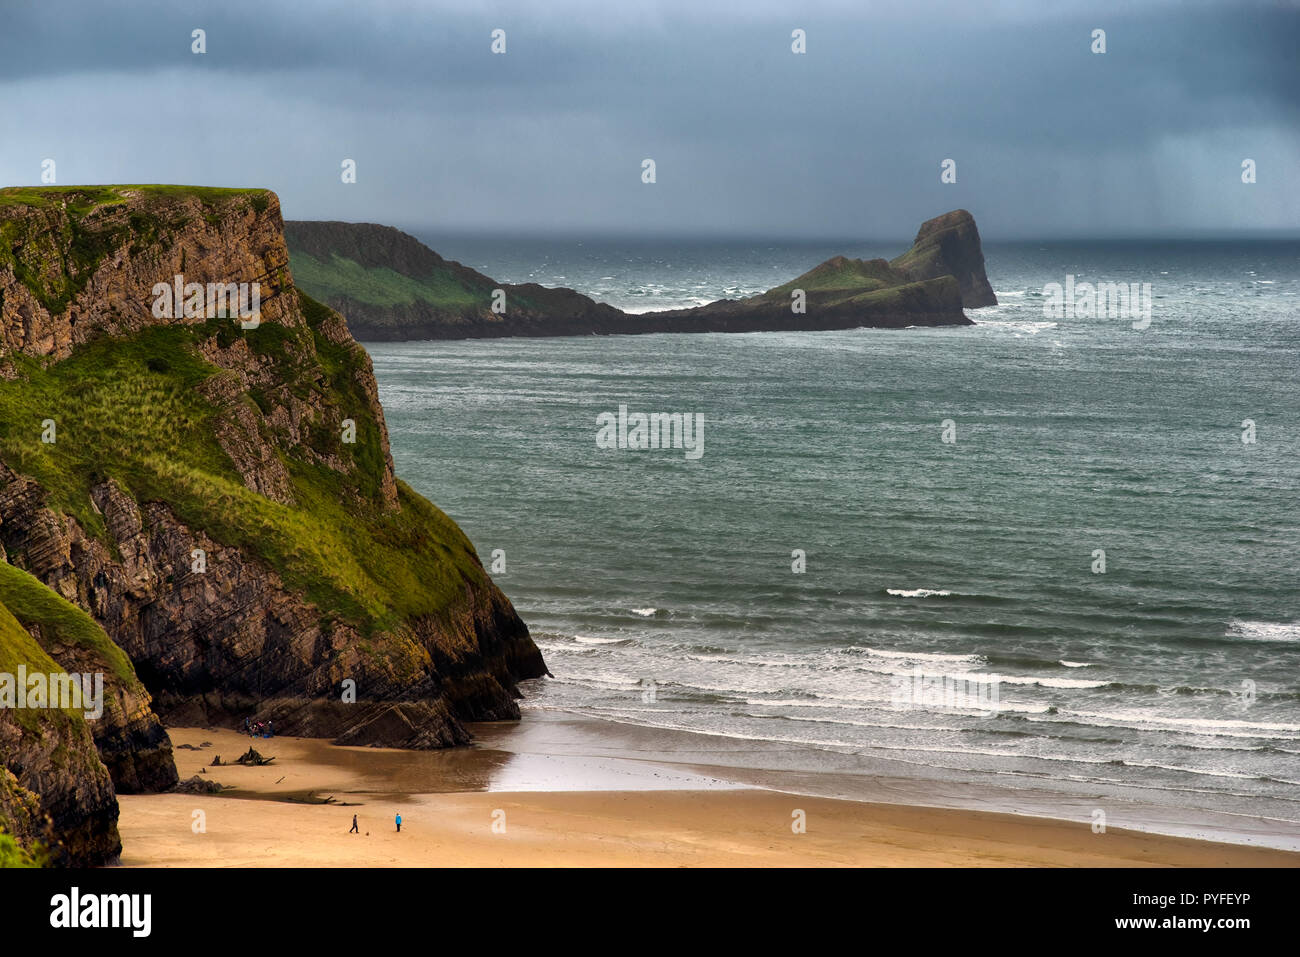 Worms Head, Rhossili Bay, the Gower Peninsula, South Wales (2) - Stock Image